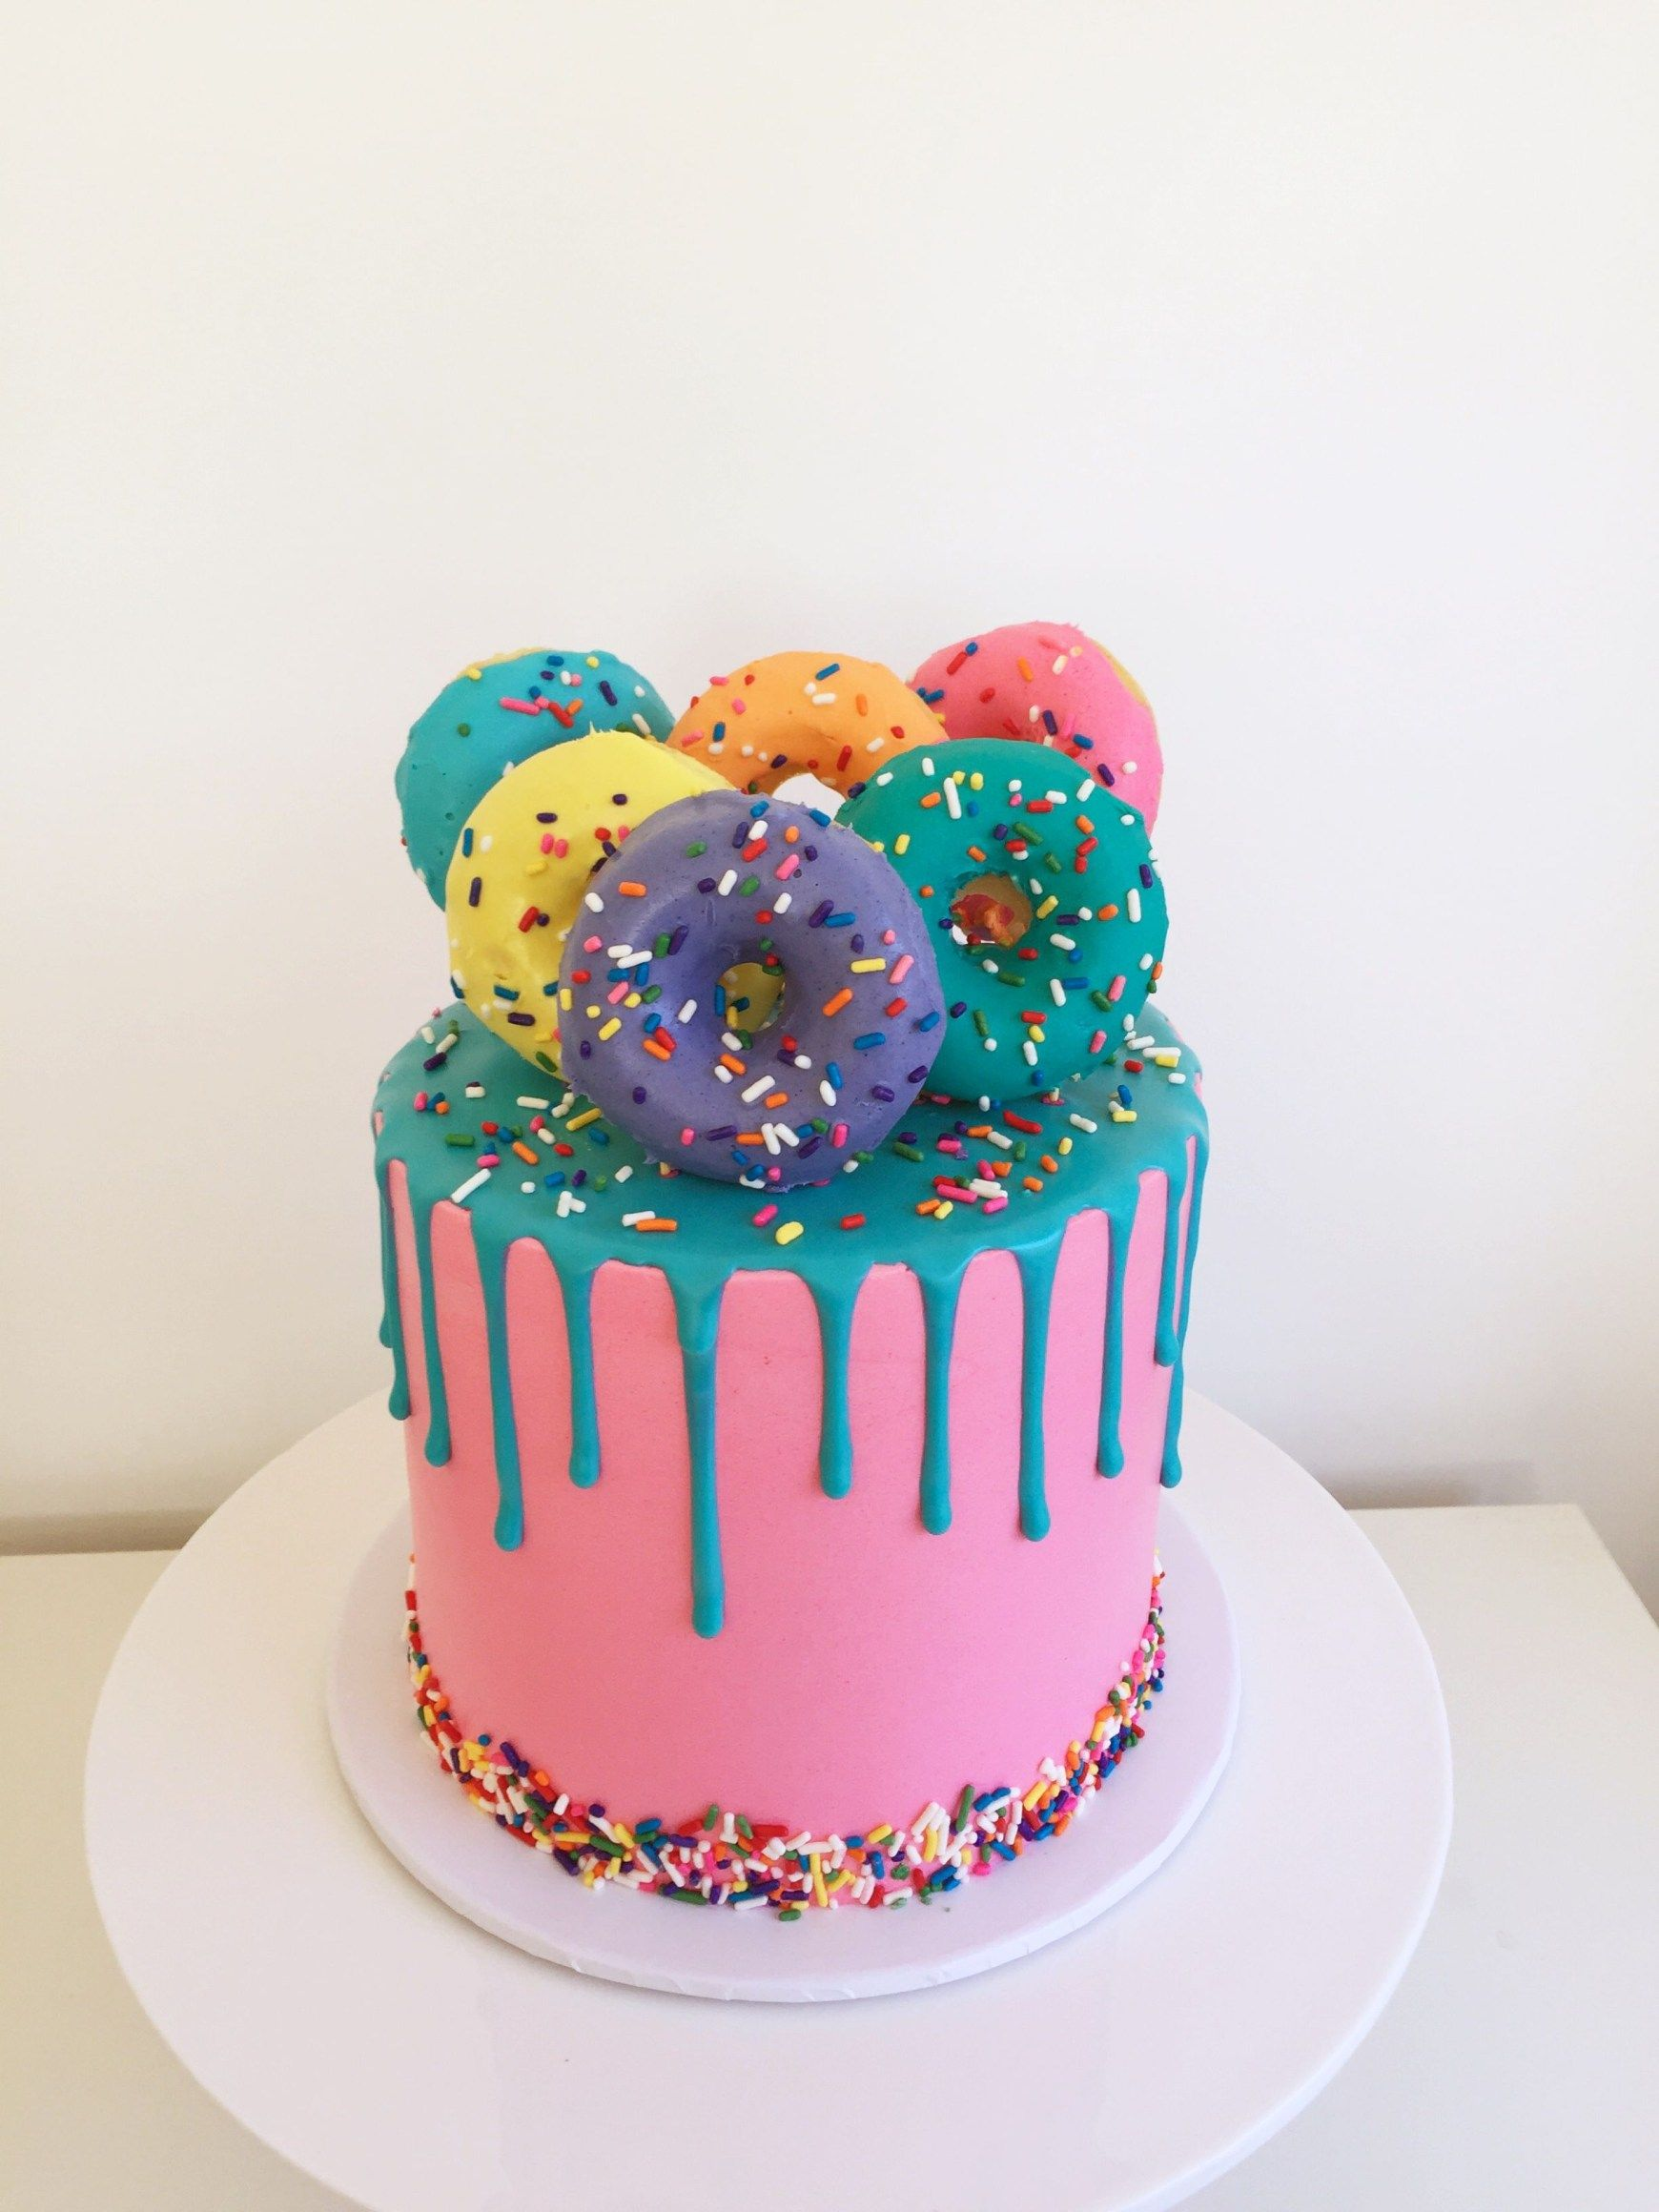 27 Amazing Image Of Donut Birthday Cake With Images Donut